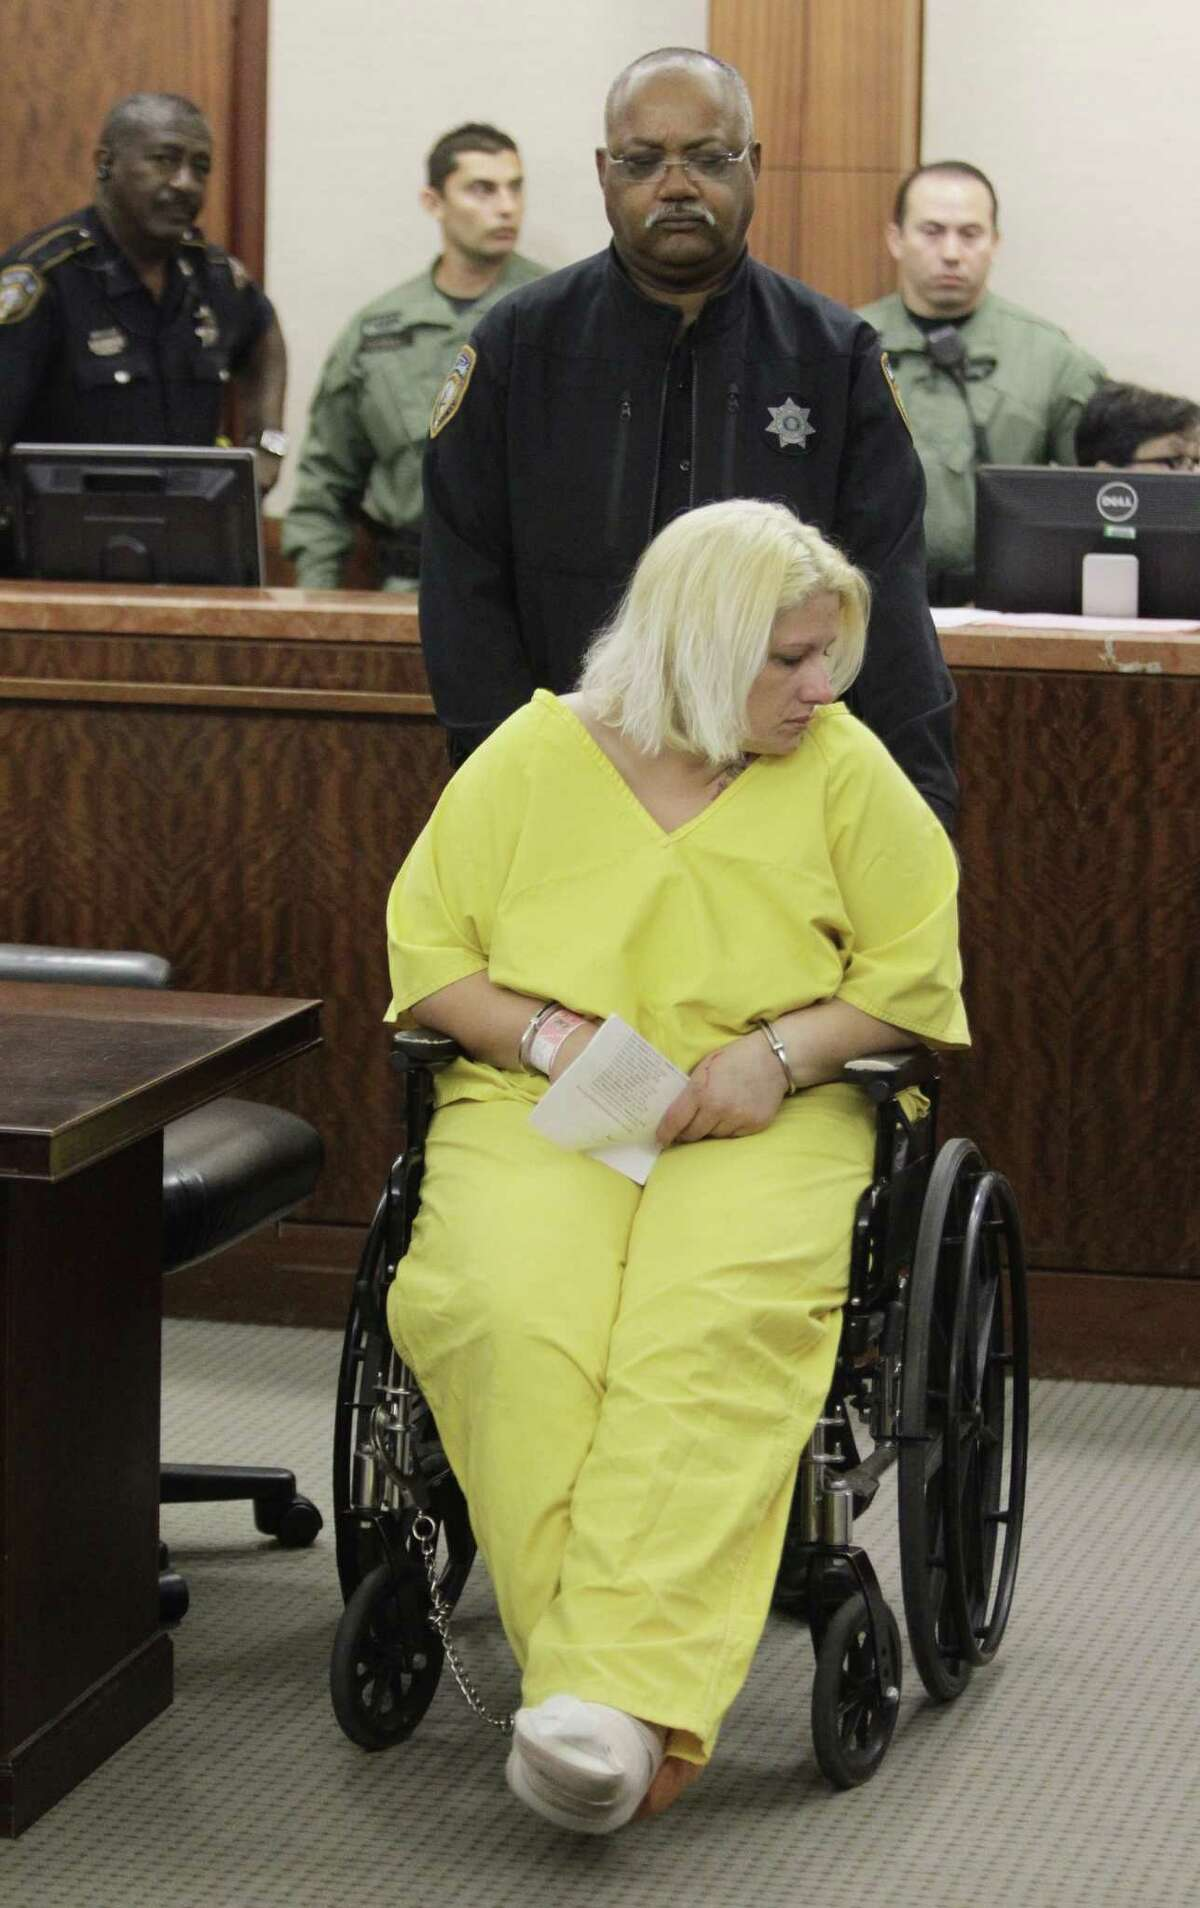 Kelly Jo Ivey appears in court Thursday, Oct. 30, 2014, charged in the head-on crash that killed Harris County sheriff's deputy Jesse Valdez III.